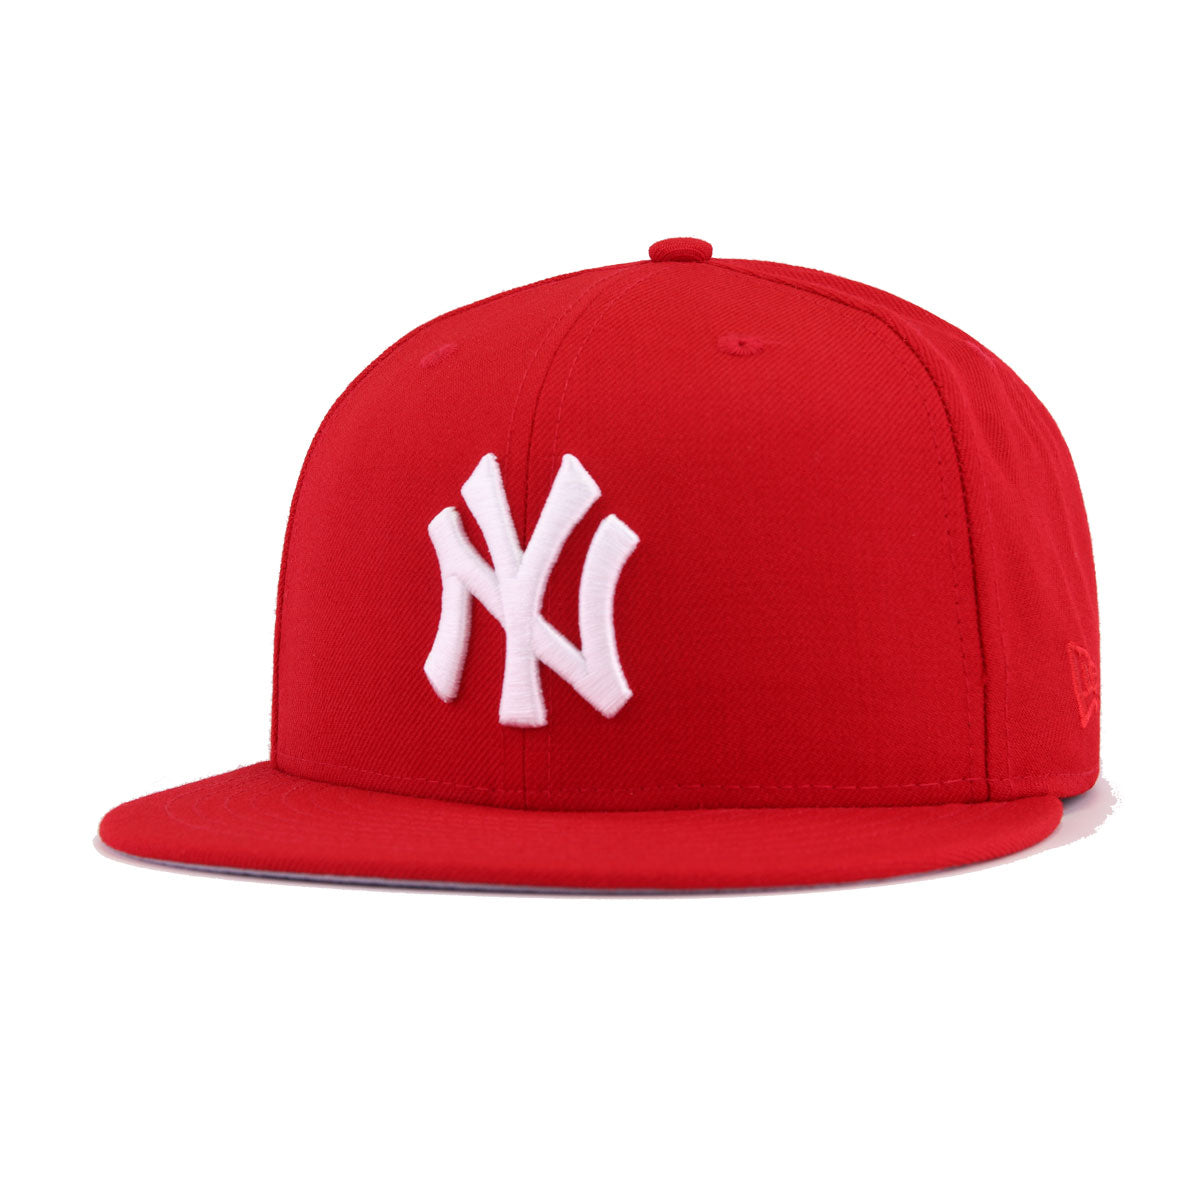 New York Yankees Scarlet New Era 9Fifty Snapback